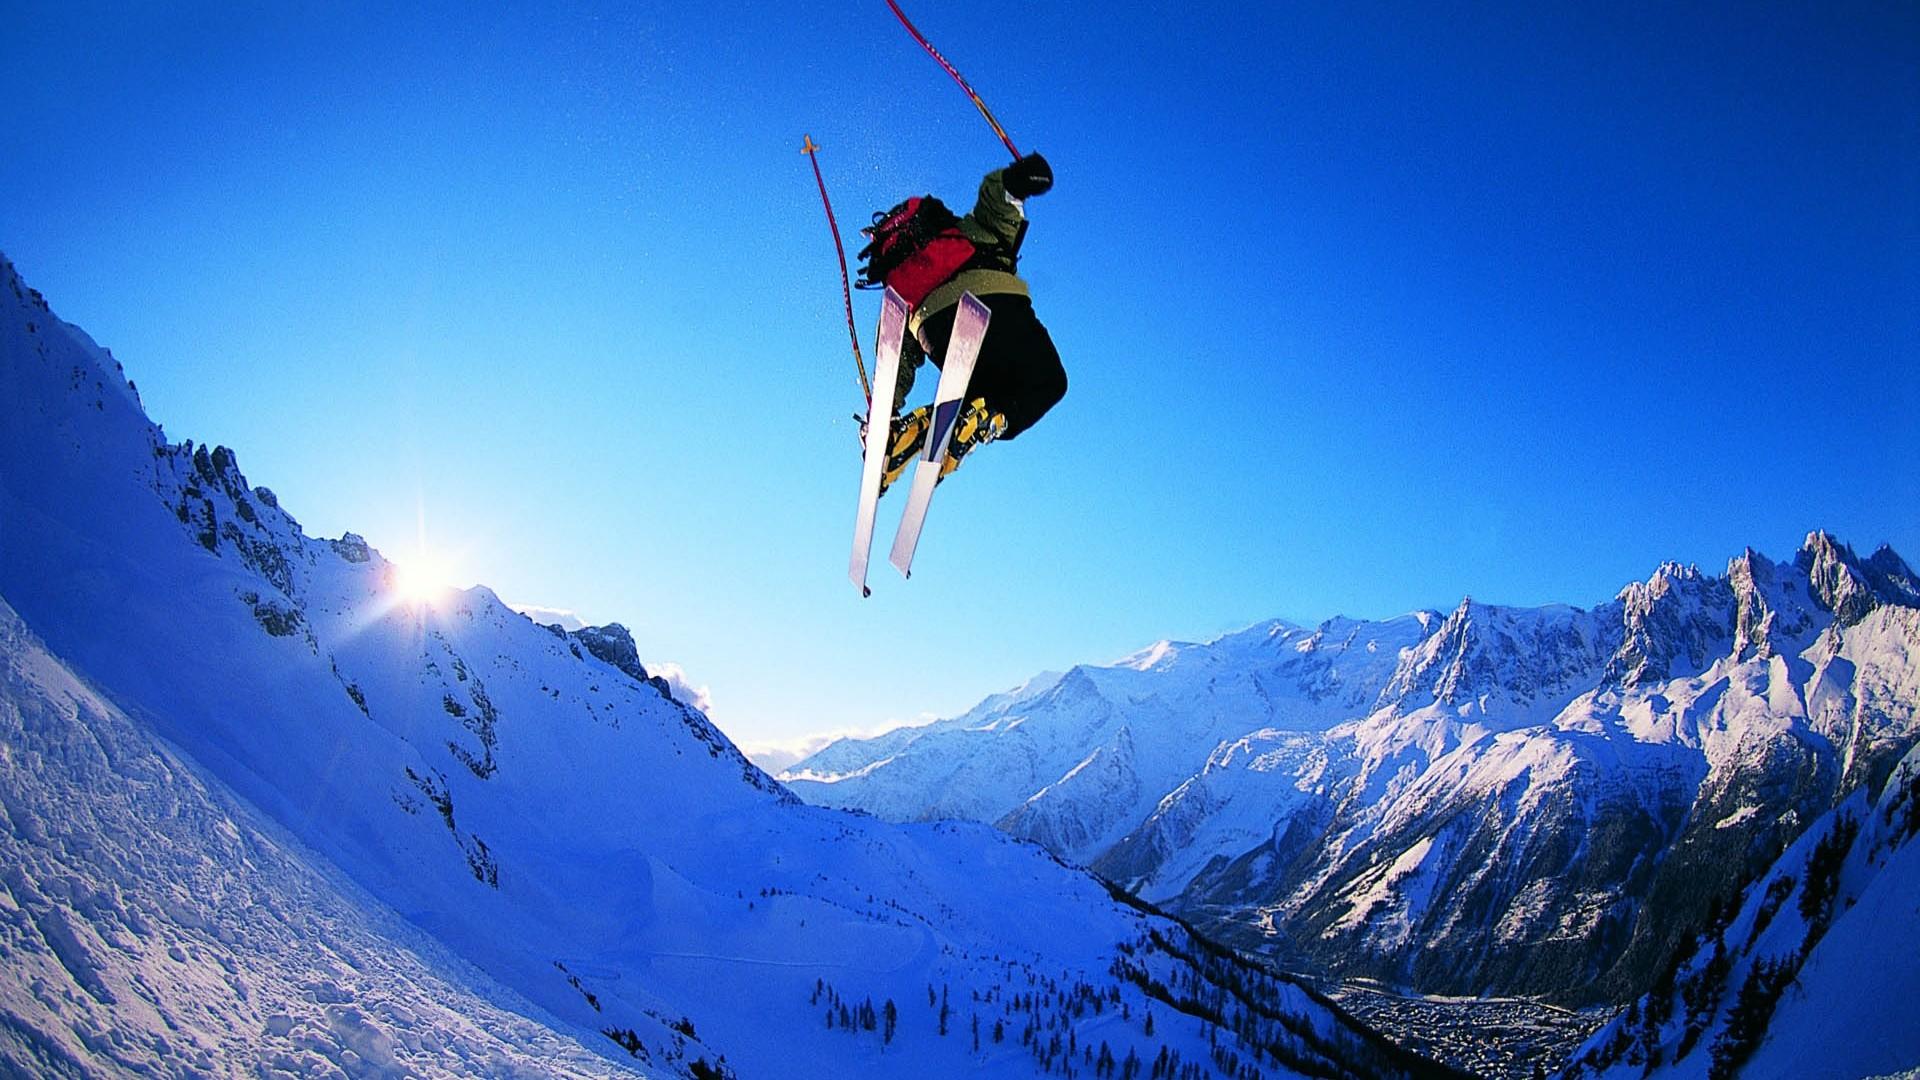 Snowboarding Skiing – Wallpaper, High Definition, High Quality .